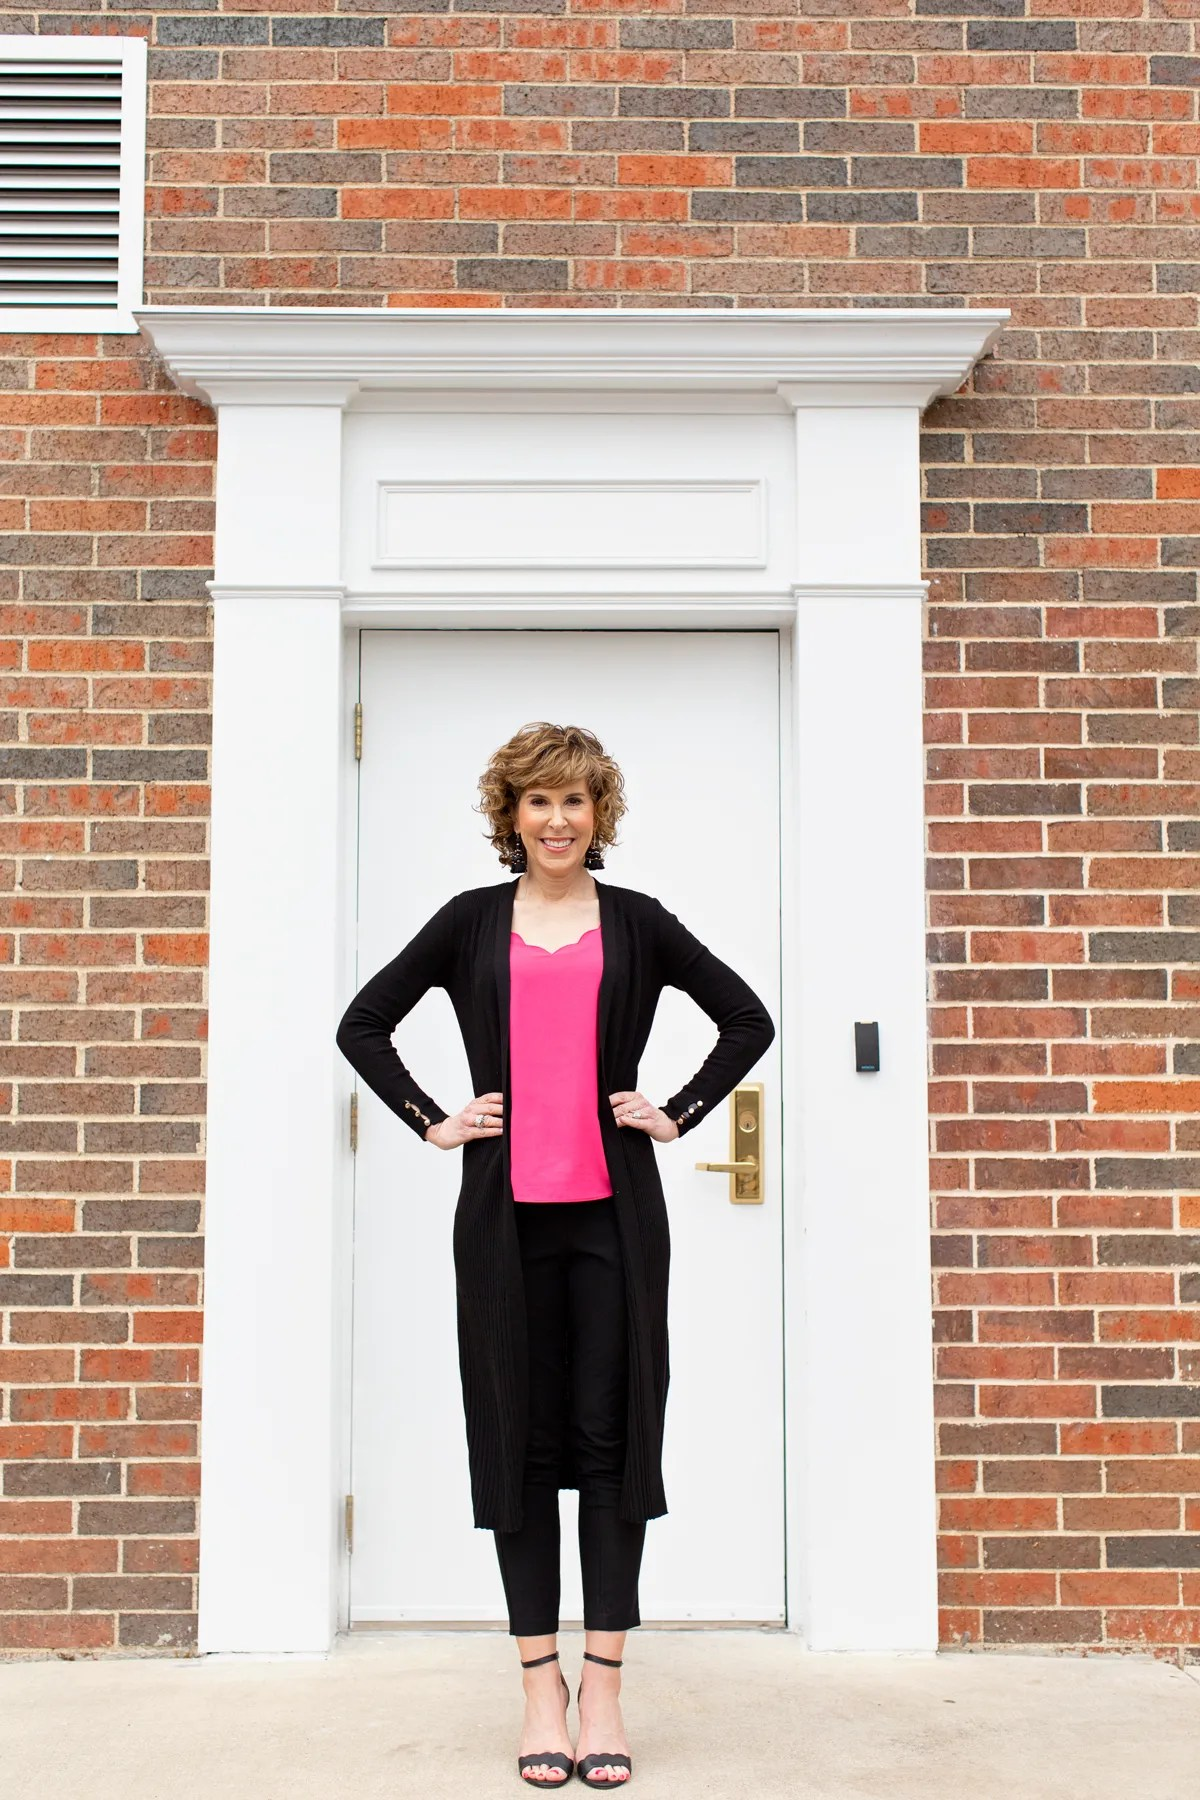 woman with hands on hips standing on porch